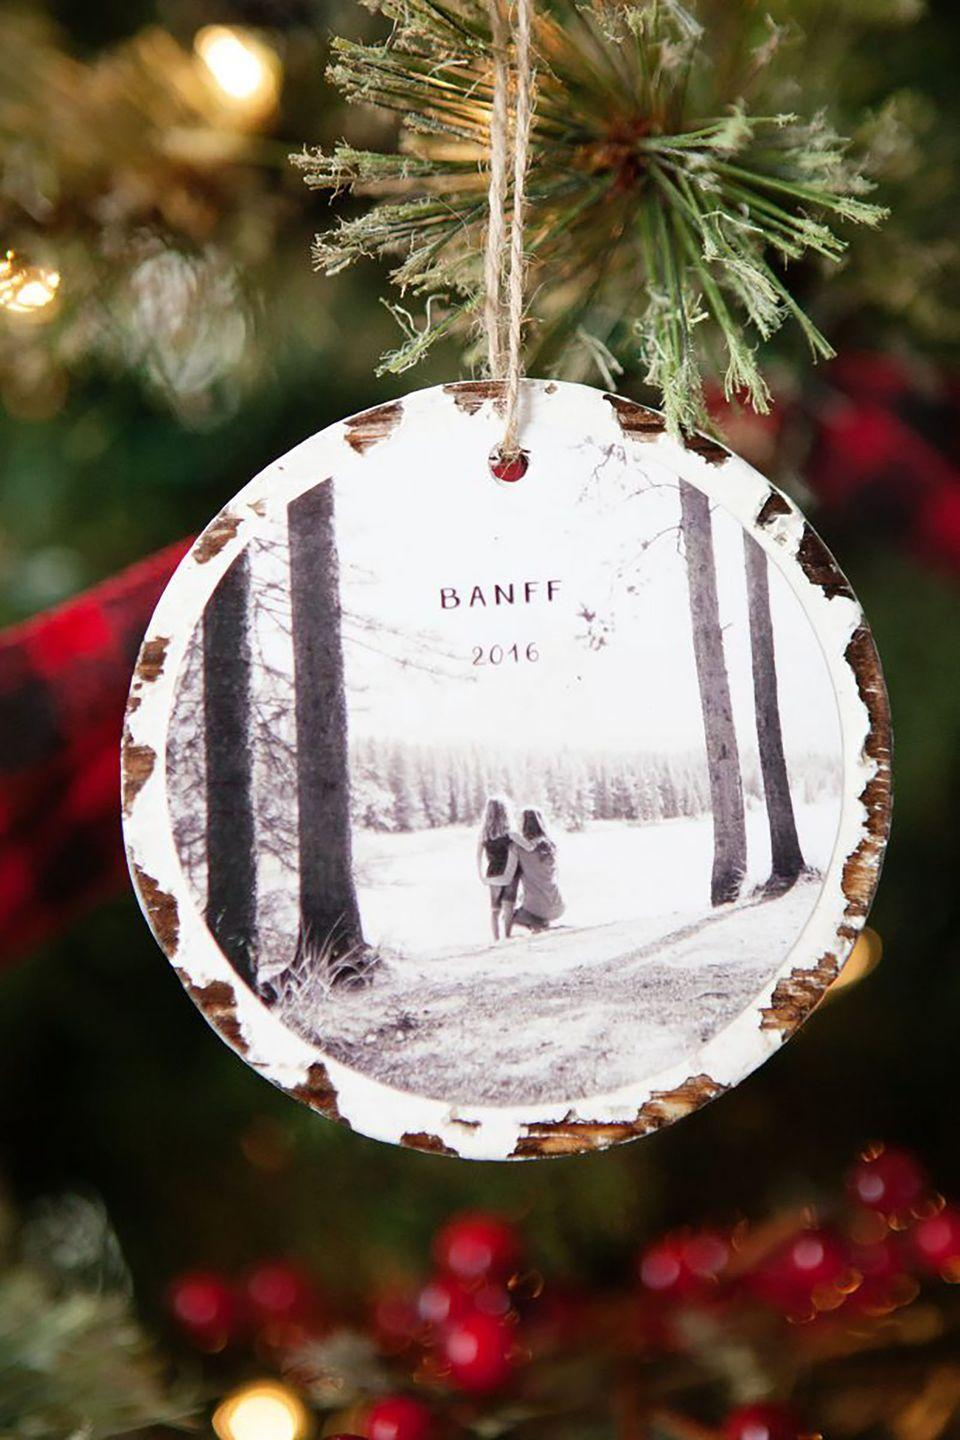 """<p>Make your favorite holiday memories last a lifetime with these quick personalized ornaments. Grab your photos, cut them into circles, and apply to wood slices using Mod Podge.</p><p><strong>Get the tutorial at <a href=""""http://simpleasthatblog.com/2016/12/10-minute-photo-keepsake-ornaments.html"""" rel=""""nofollow noopener"""" target=""""_blank"""" data-ylk=""""slk:Simple As That"""" class=""""link rapid-noclick-resp"""">Simple As That</a>.</strong><br></p><p><a class=""""link rapid-noclick-resp"""" href=""""https://www.amazon.com/Assorted-Decorations-Ornaments-Super-Outlet/dp/B01FRDI8EY/?tag=syn-yahoo-20&ascsubtag=%5Bartid%7C10050.g.1070%5Bsrc%7Cyahoo-us"""" rel=""""nofollow noopener"""" target=""""_blank"""" data-ylk=""""slk:SHOP WOOD SLICES"""">SHOP WOOD SLICES</a></p>"""